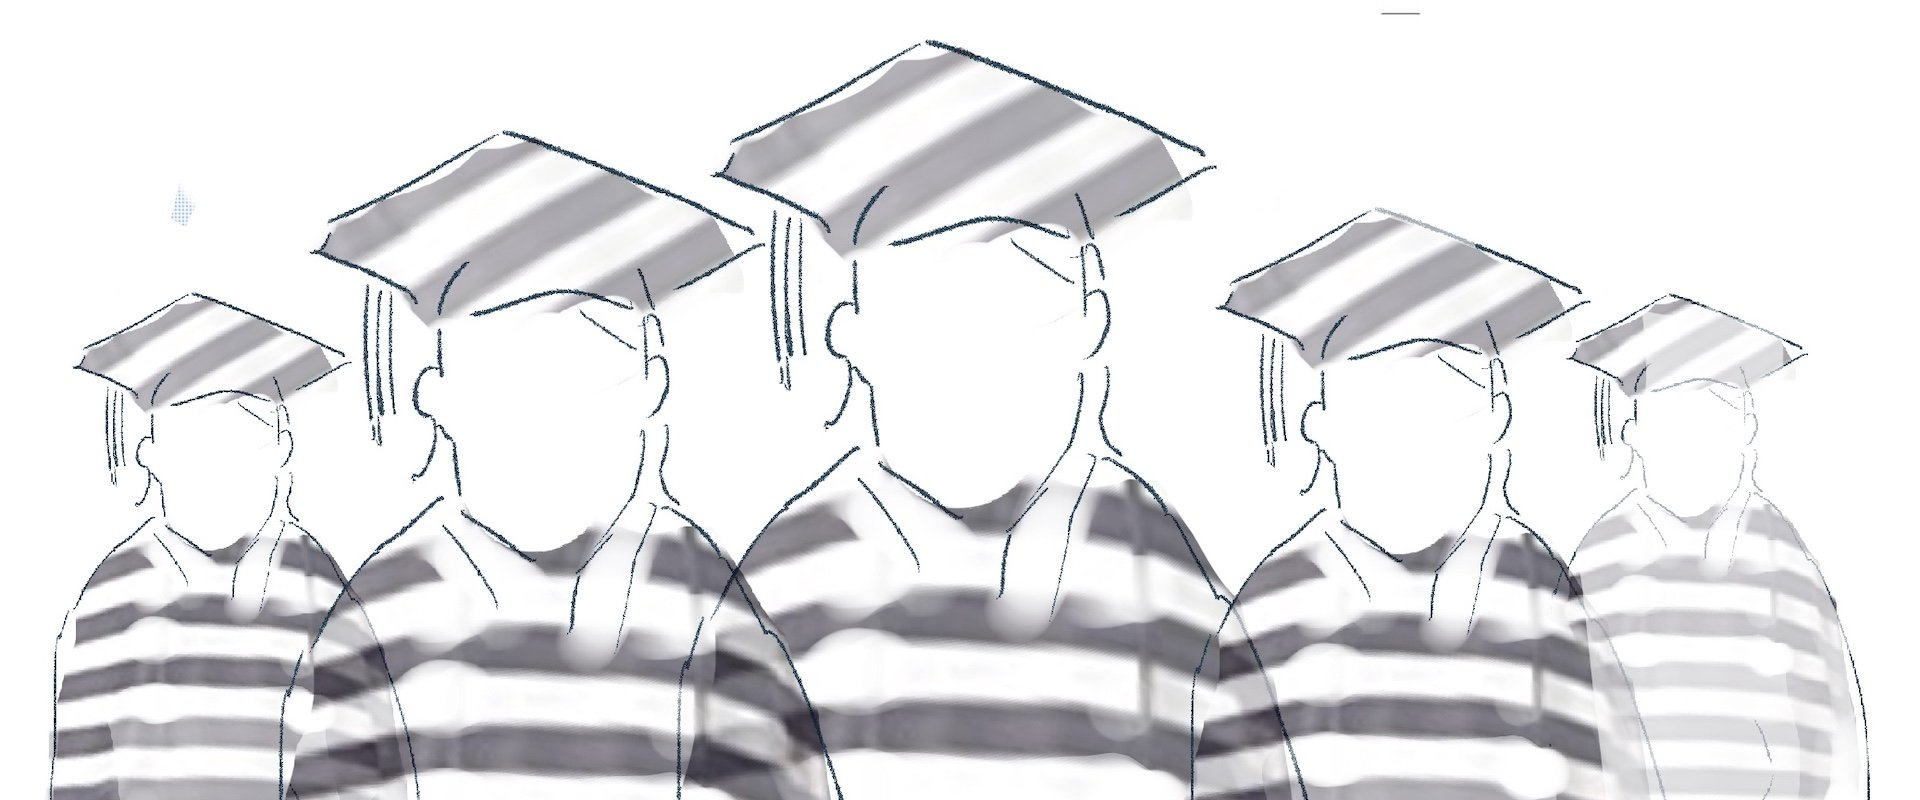 Finding a Polity in Prison Writing